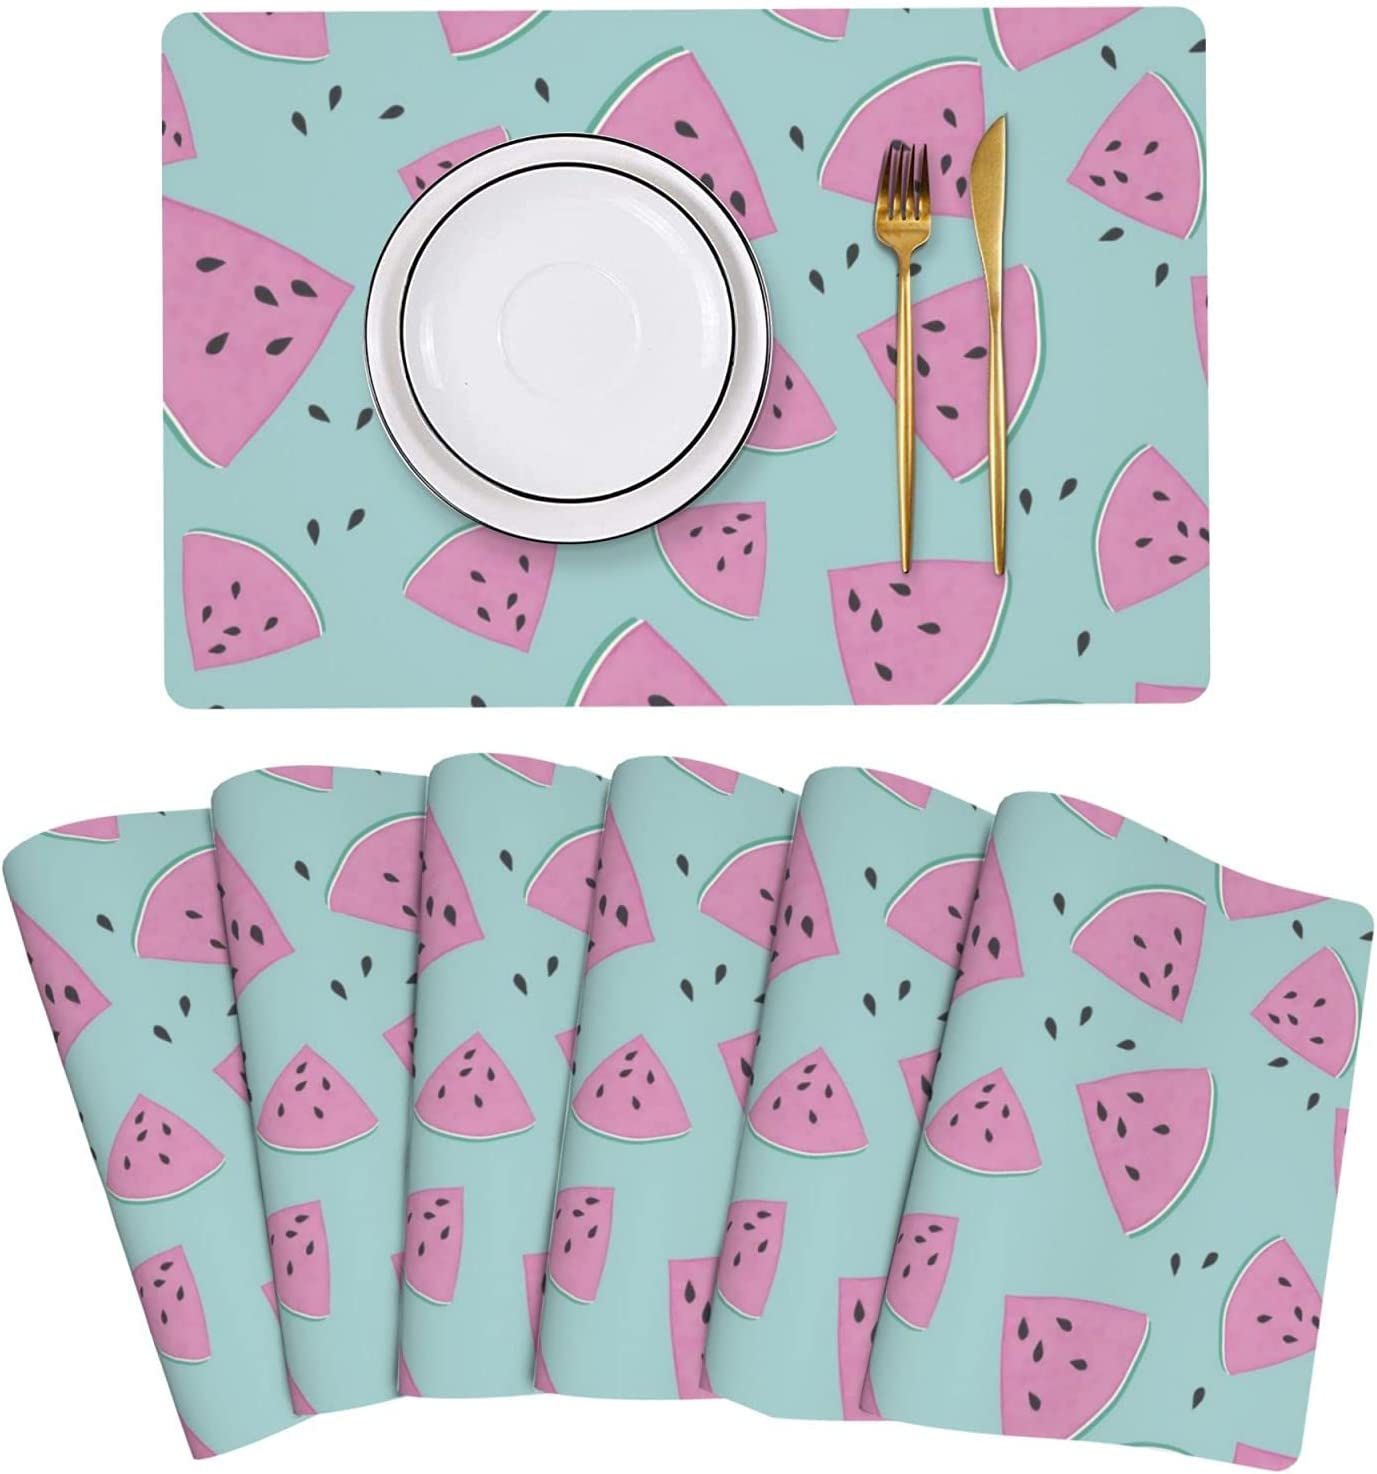 Watermelon Cute Max 58% OFF Pink safety Placemat Leather Table Set 6 Mats Easy t of